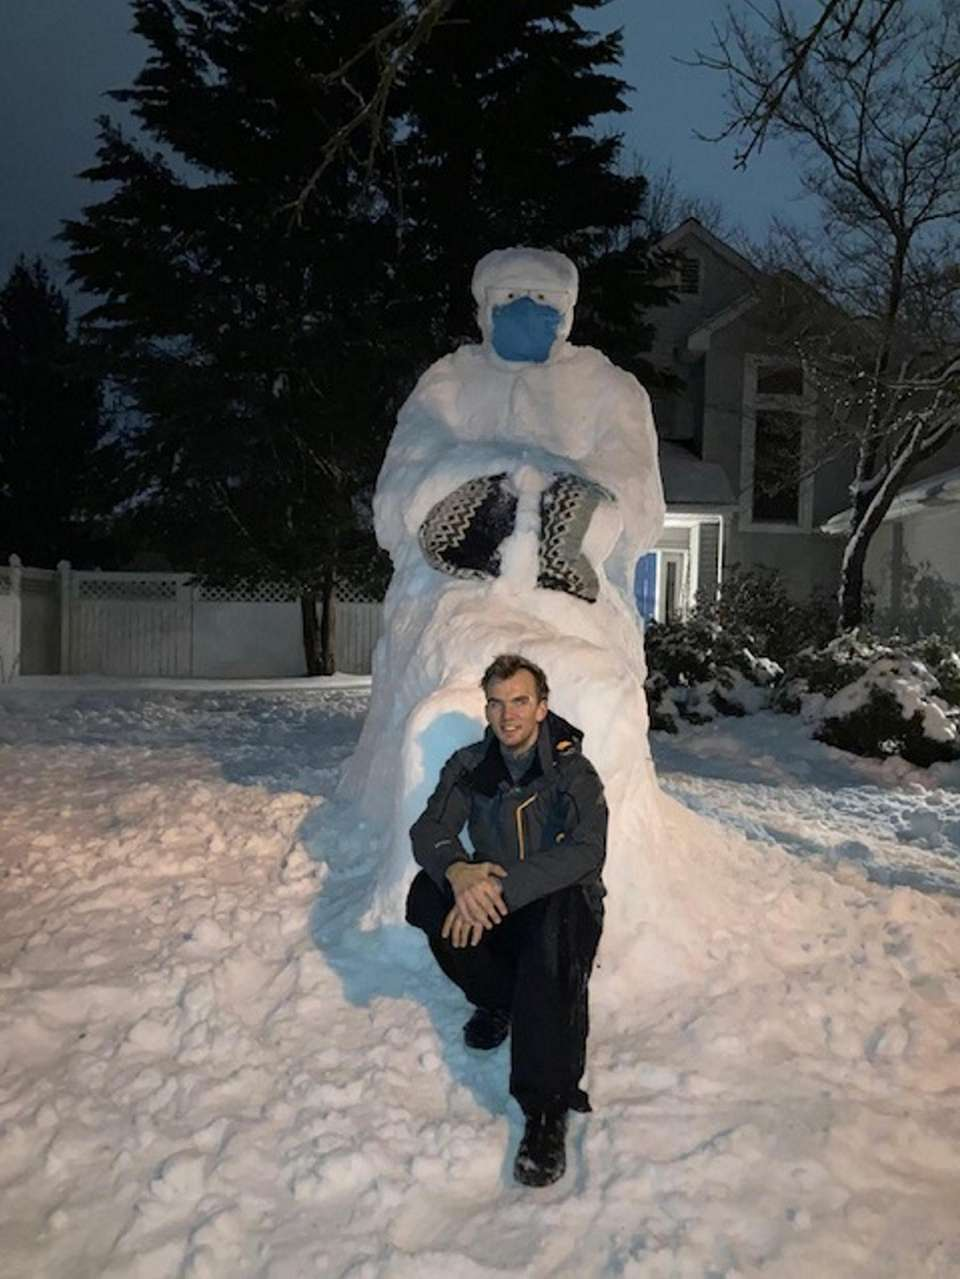 Me, posing in front of the snow sculpture.